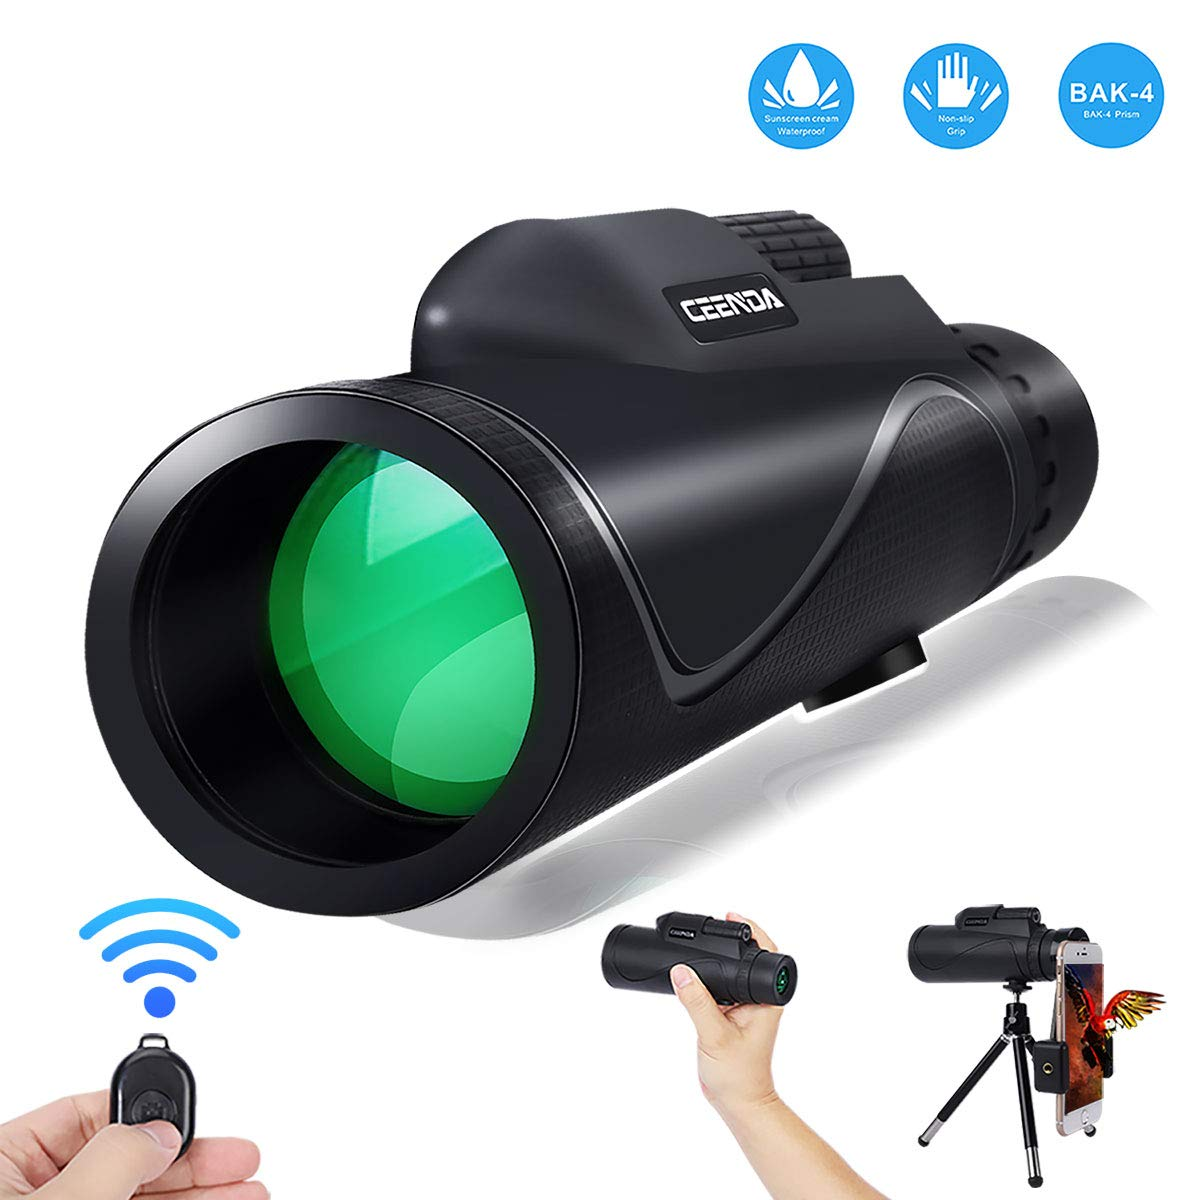 Monocular Telescope,12X50 High Power&HD Monocular with Universal Smartphone Holder and Wireless Remote Control-Waterproof Scope, BAK4 Prism for Bird Watching, Hunting, Surveillance, Hiking by Ceenda